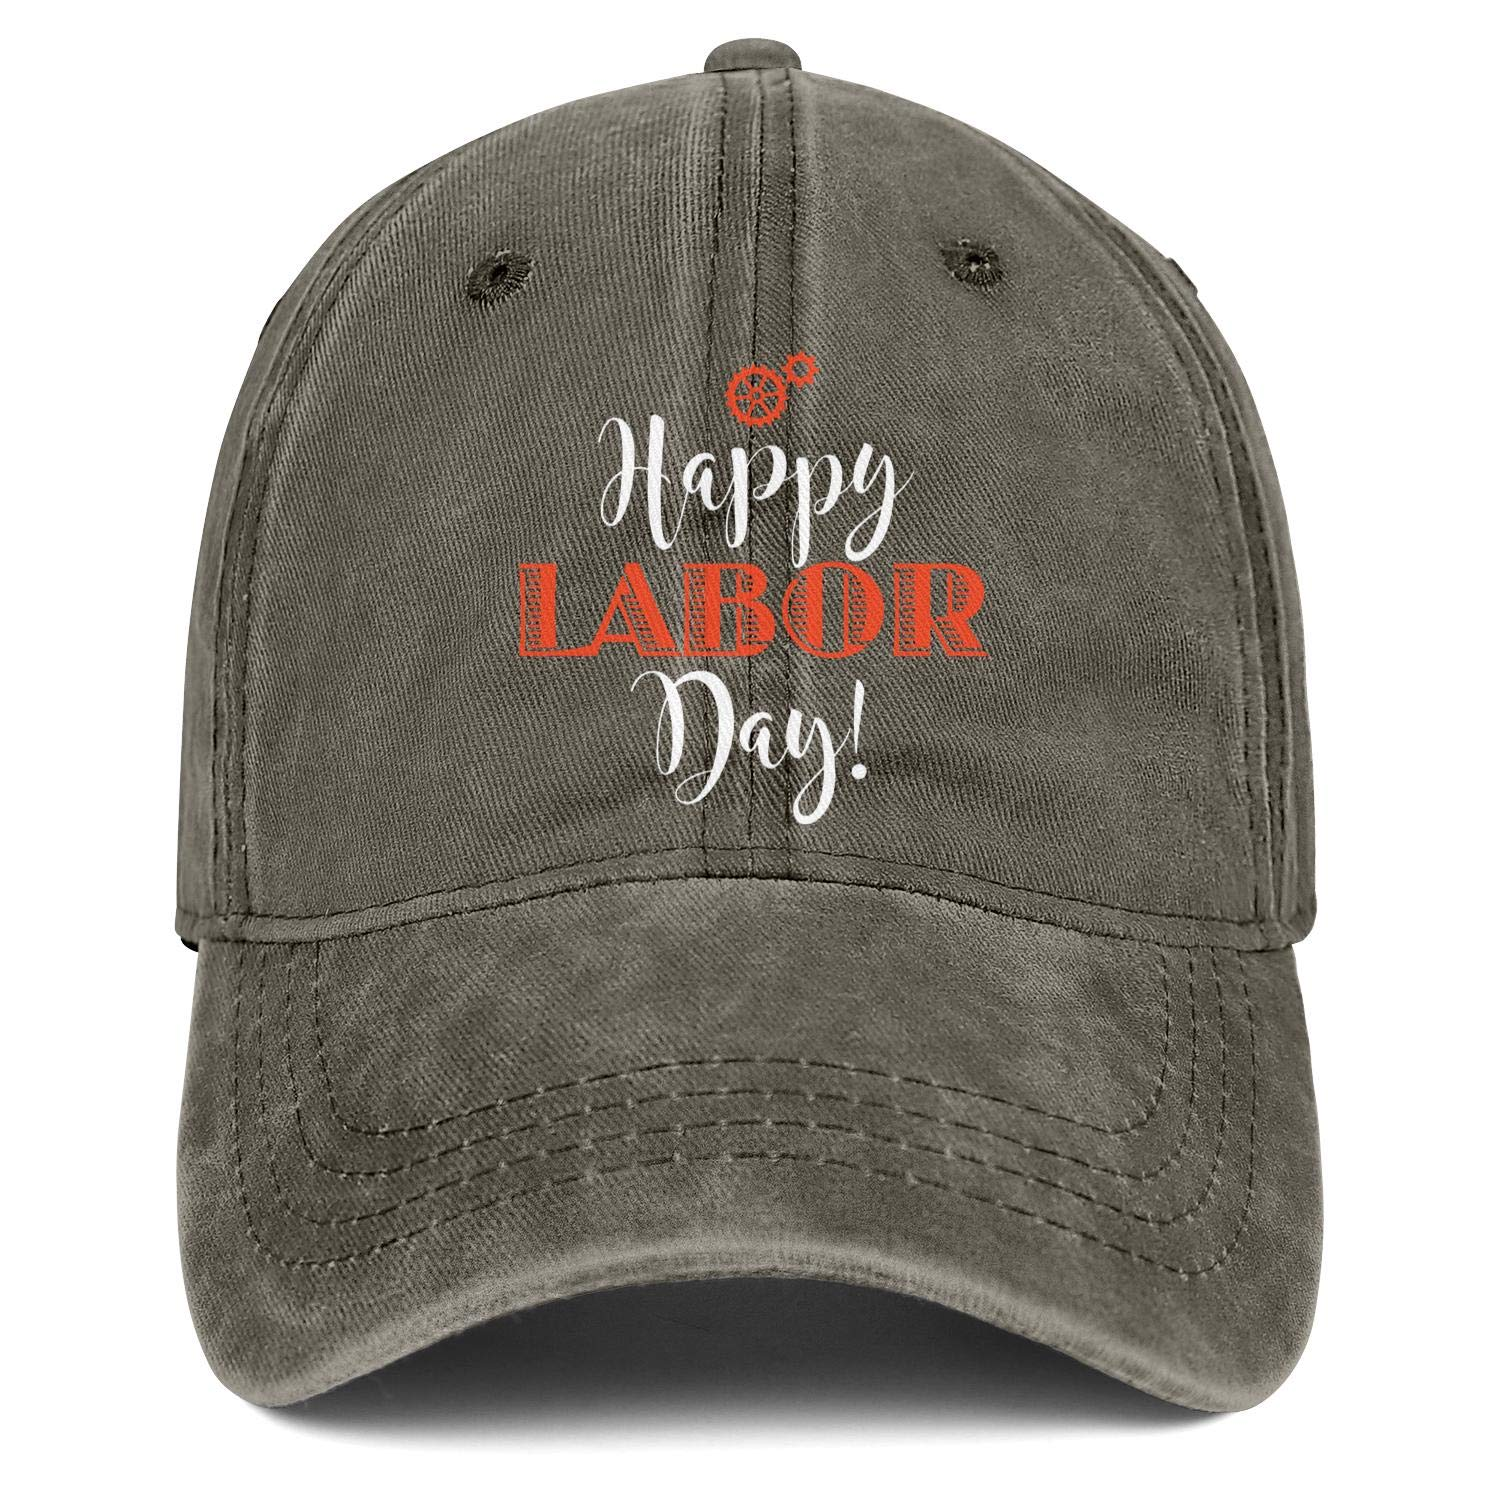 Baseball Caps America Happy Labor Day Adjustable Vintage Mountaineering Cap for Women//Men